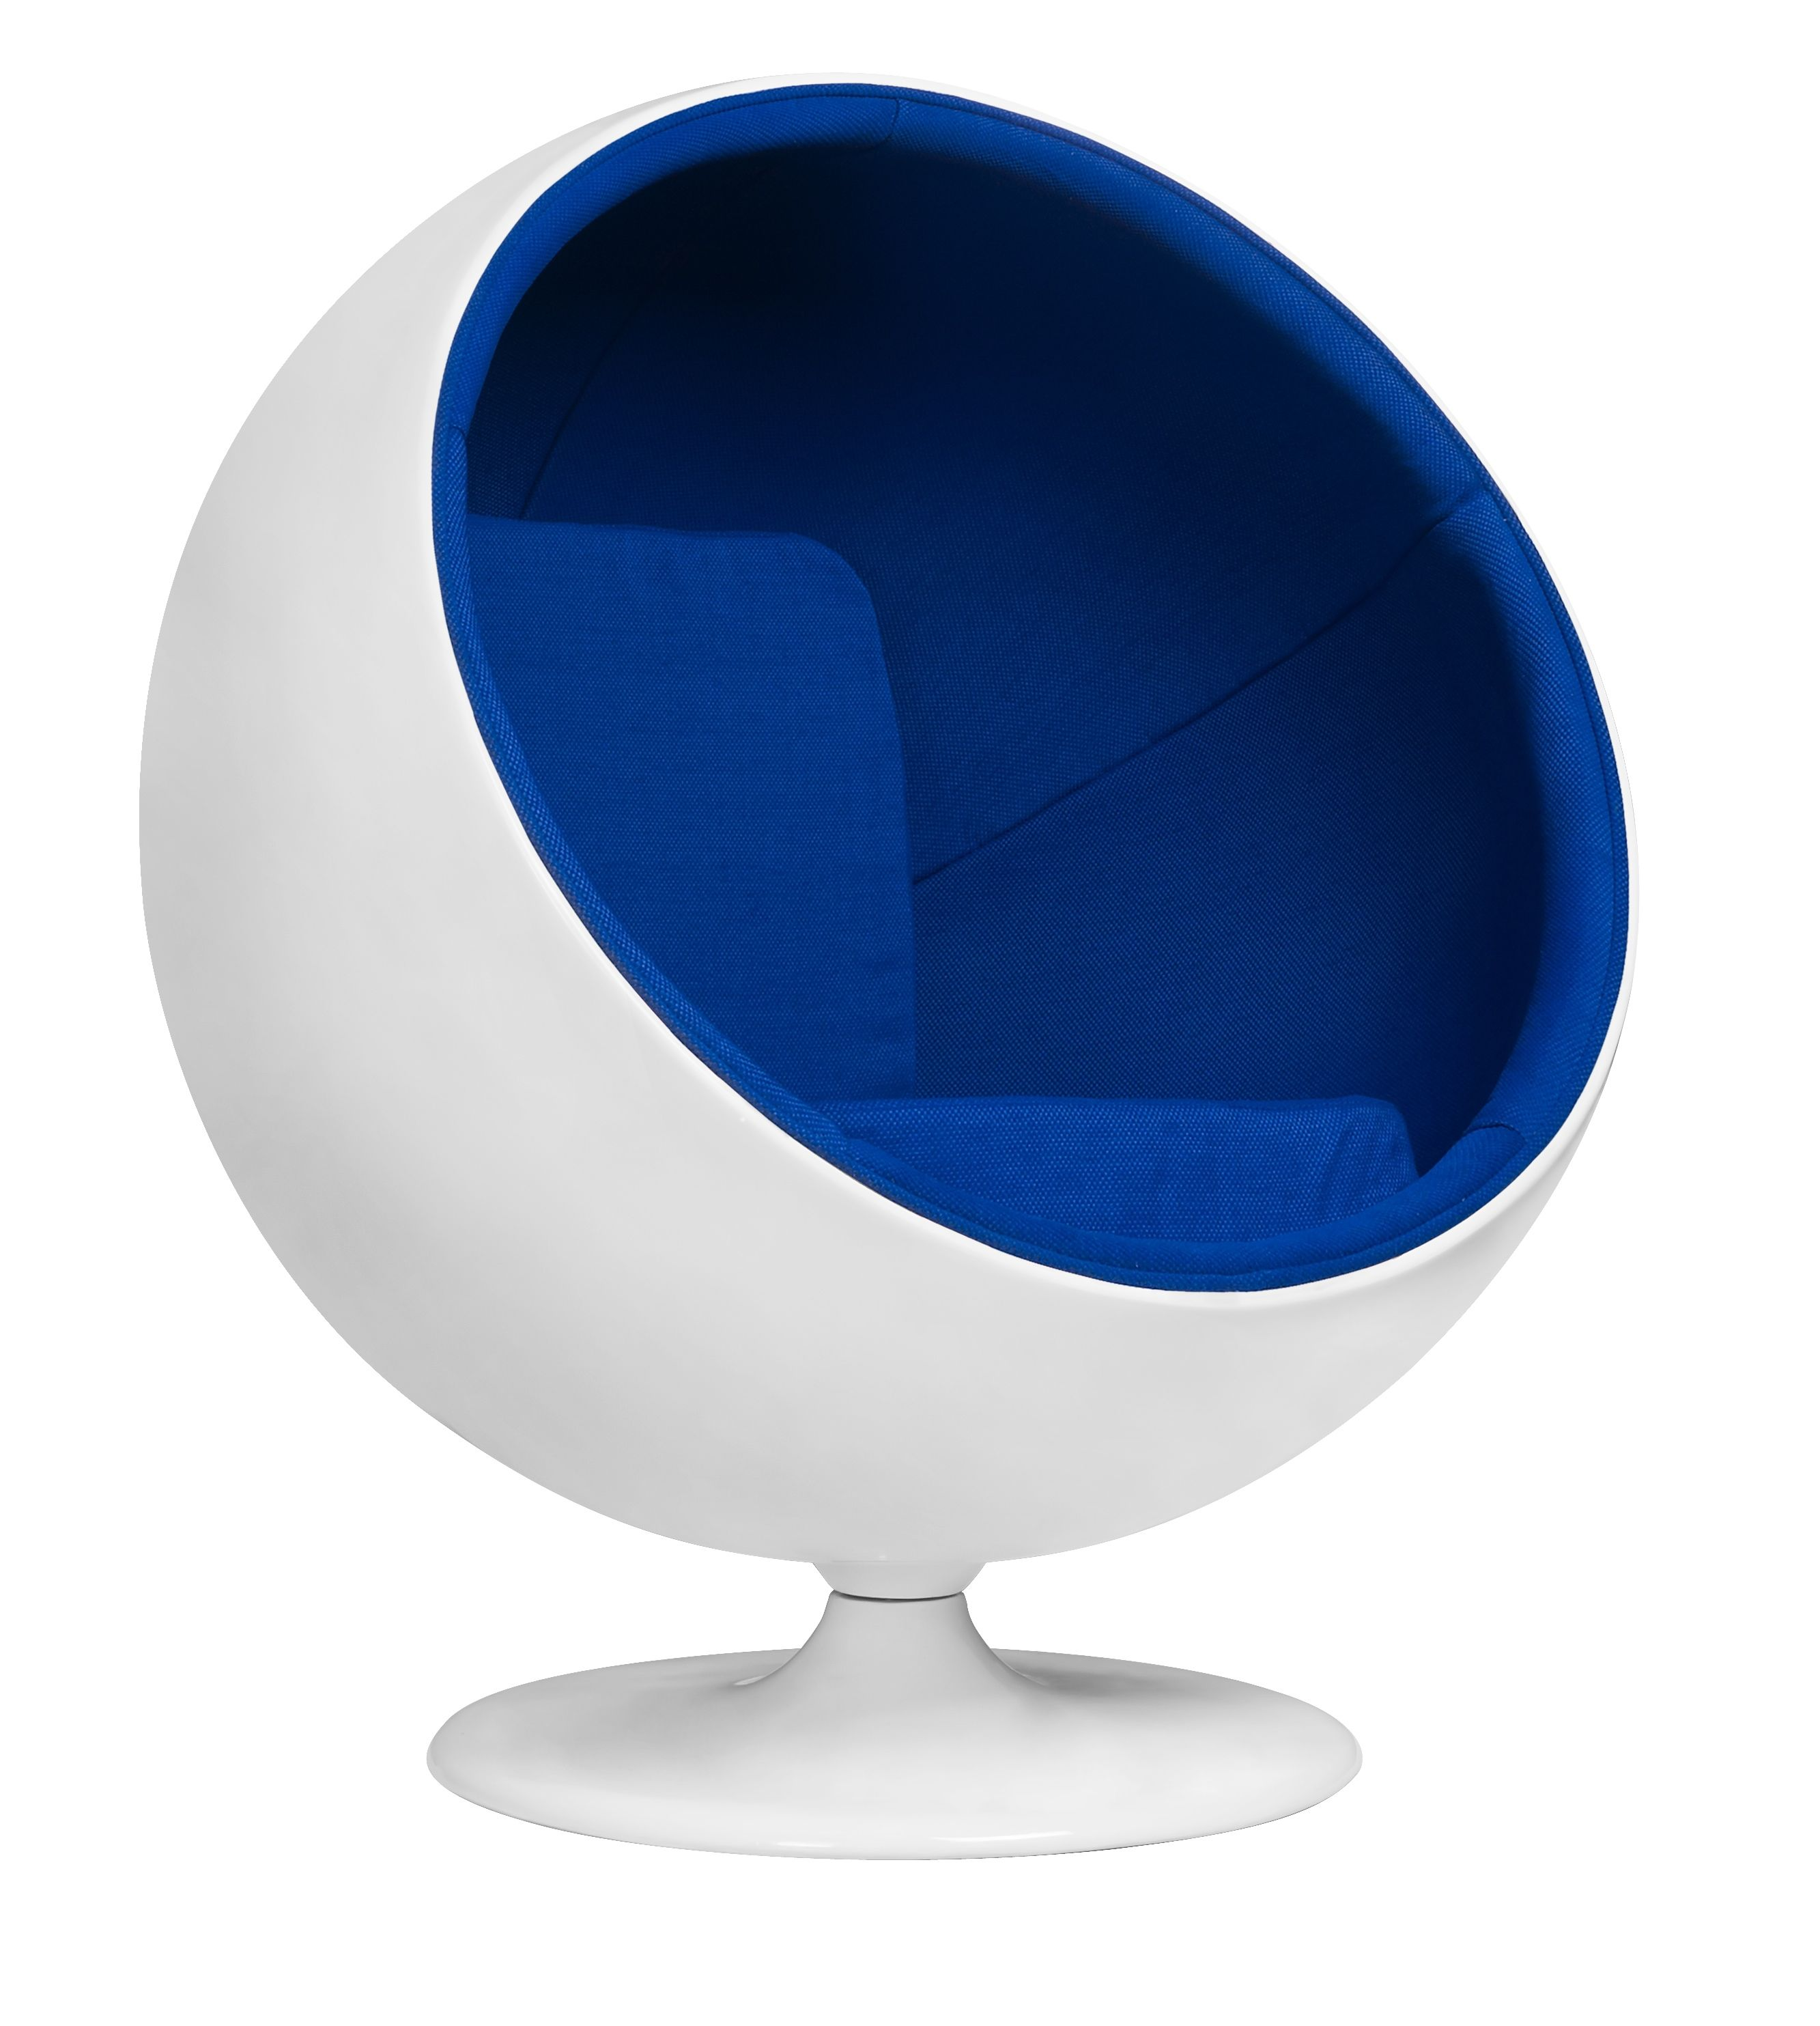 3025 eero saarinen ball chair furniture lighting pinterest ball chair. Black Bedroom Furniture Sets. Home Design Ideas